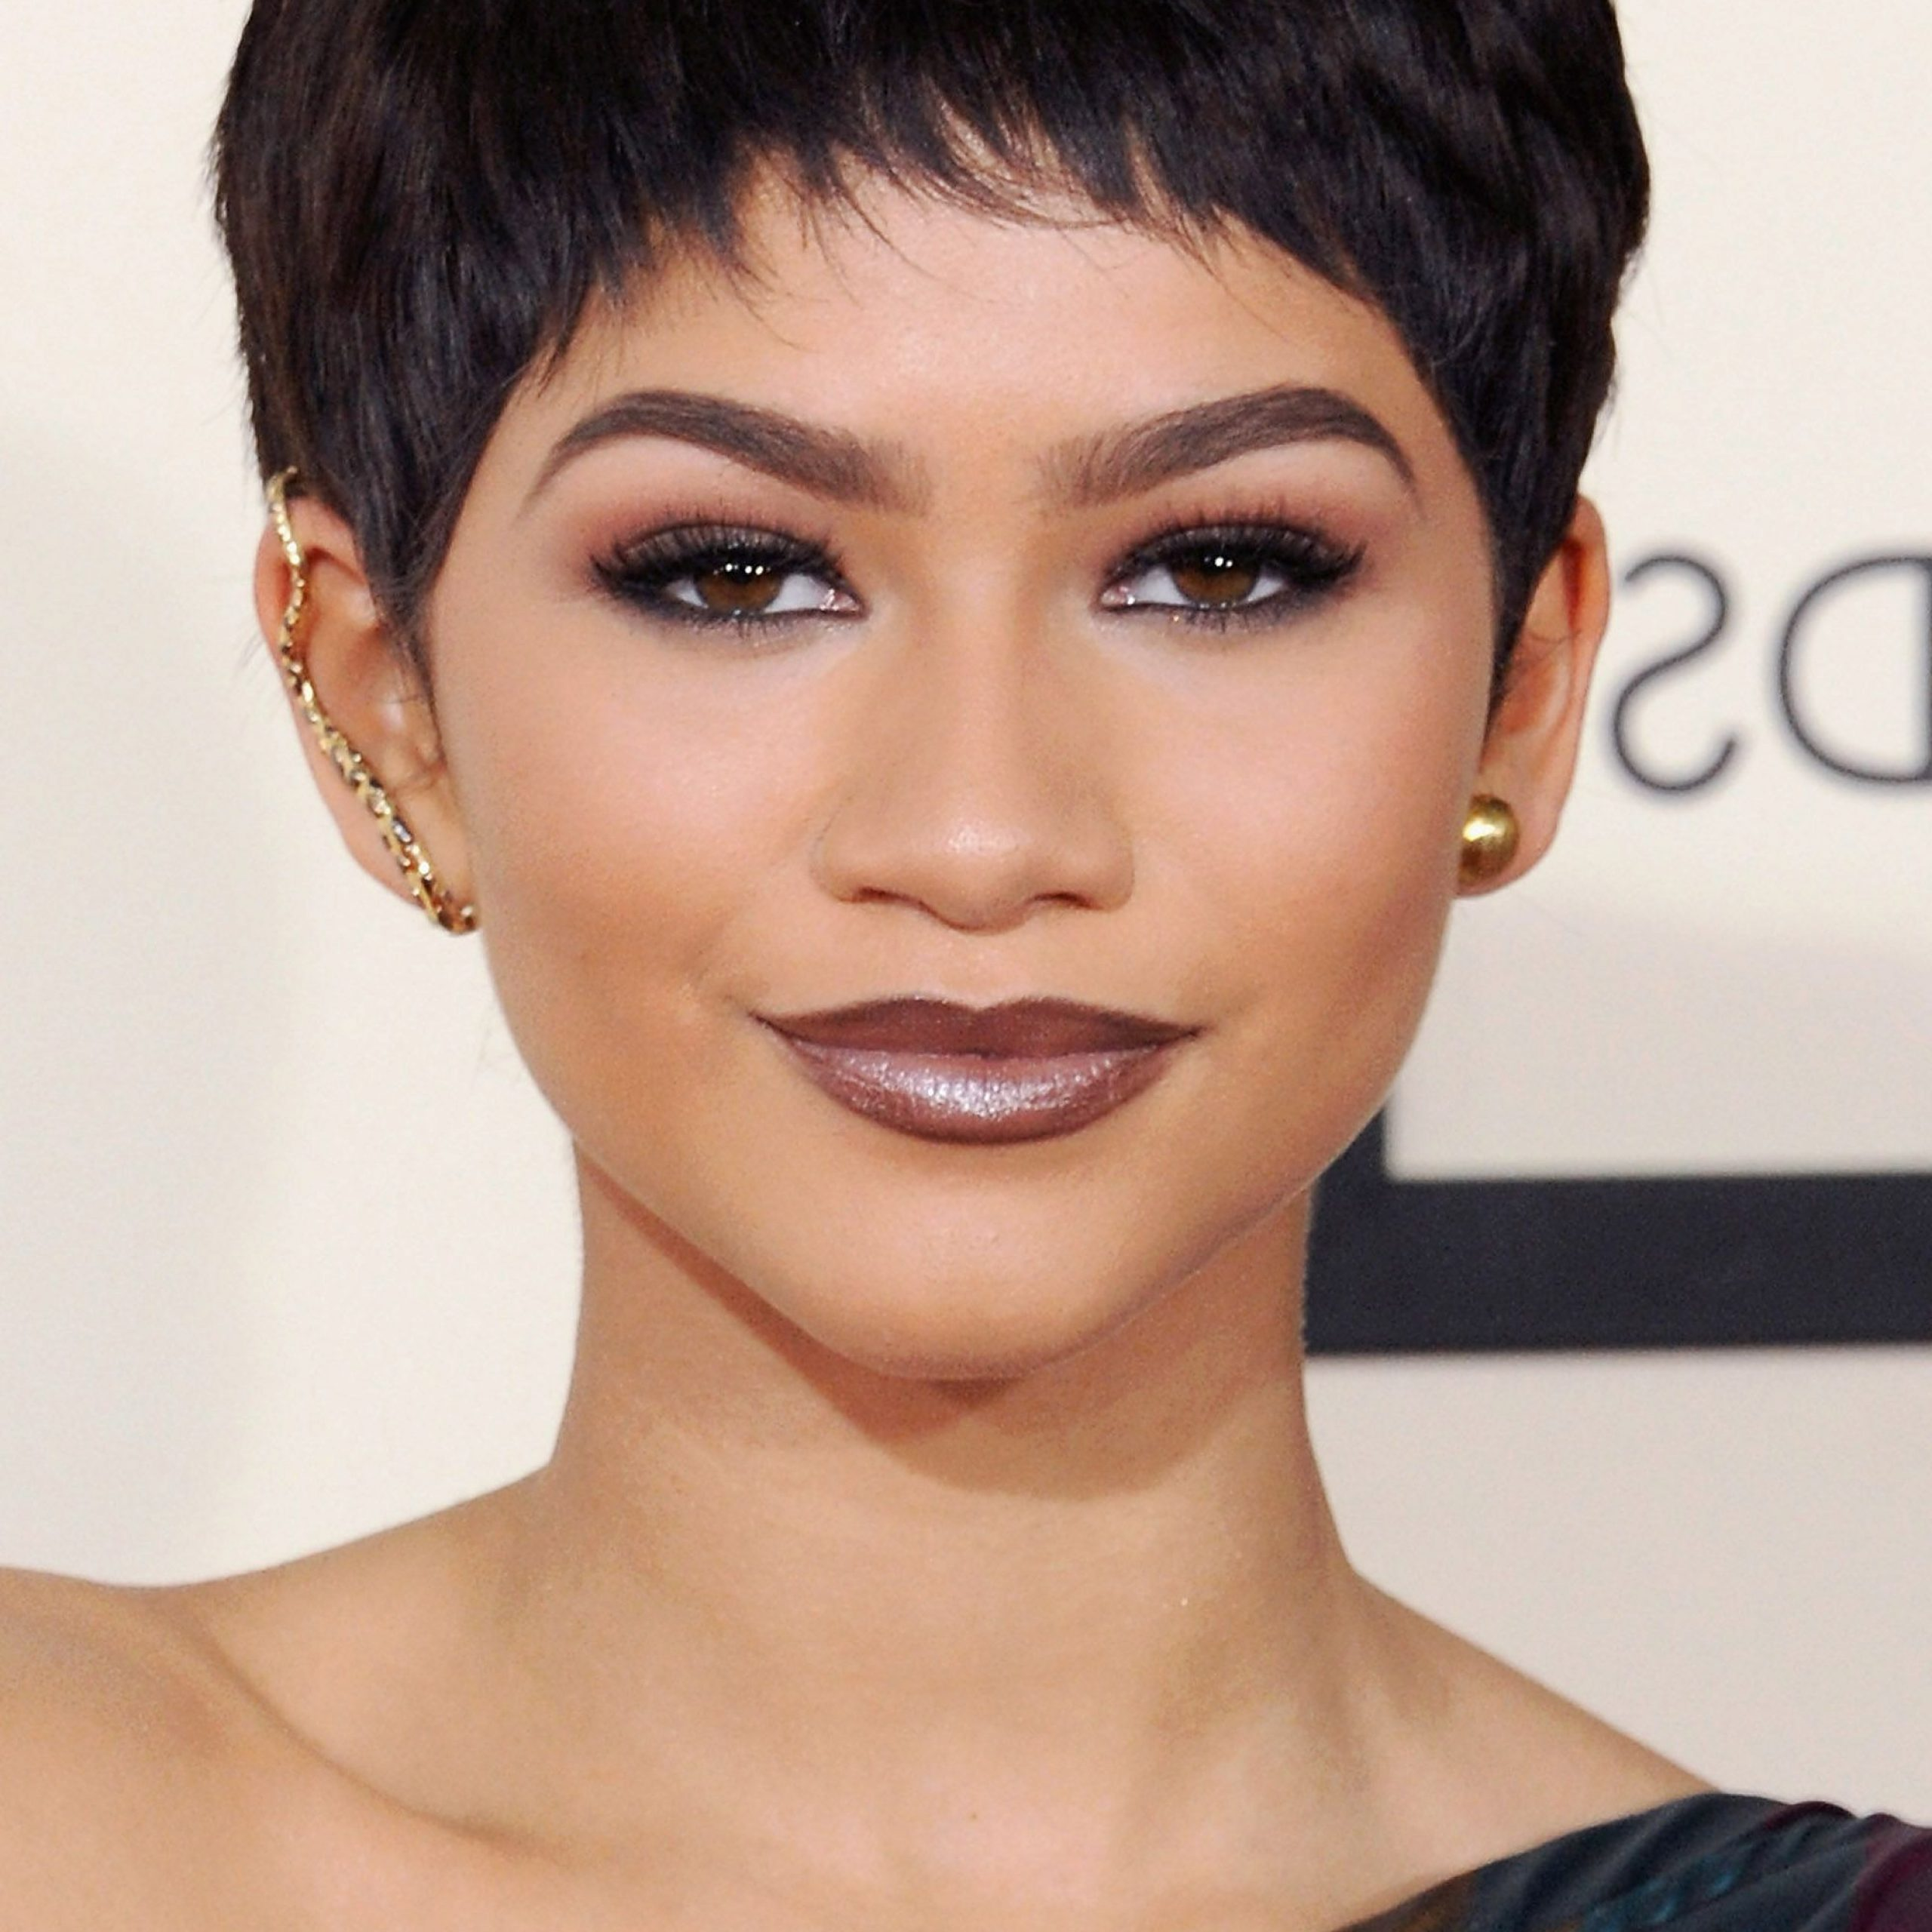 60+ Pixie Cuts We Love For 2020 – Short Pixie Hairstyles Intended For Famous Pixie Haircuts With Wispy Bangs (View 8 of 20)